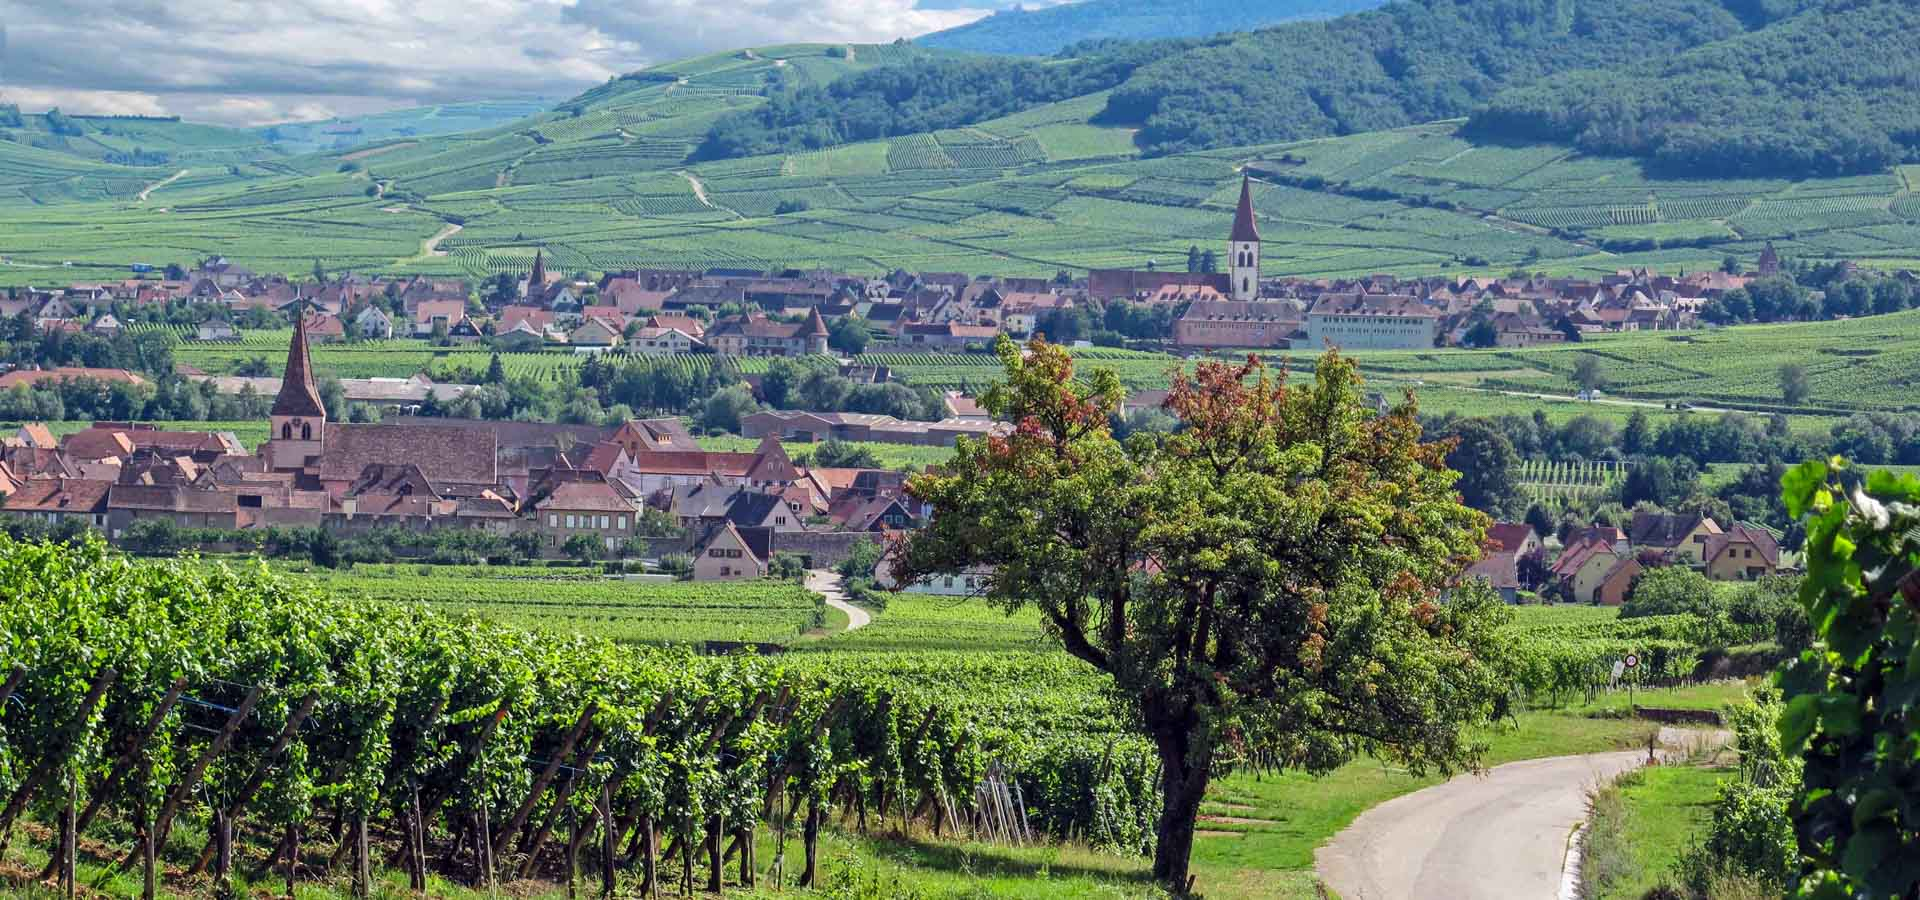 5 Minutes in Alsace